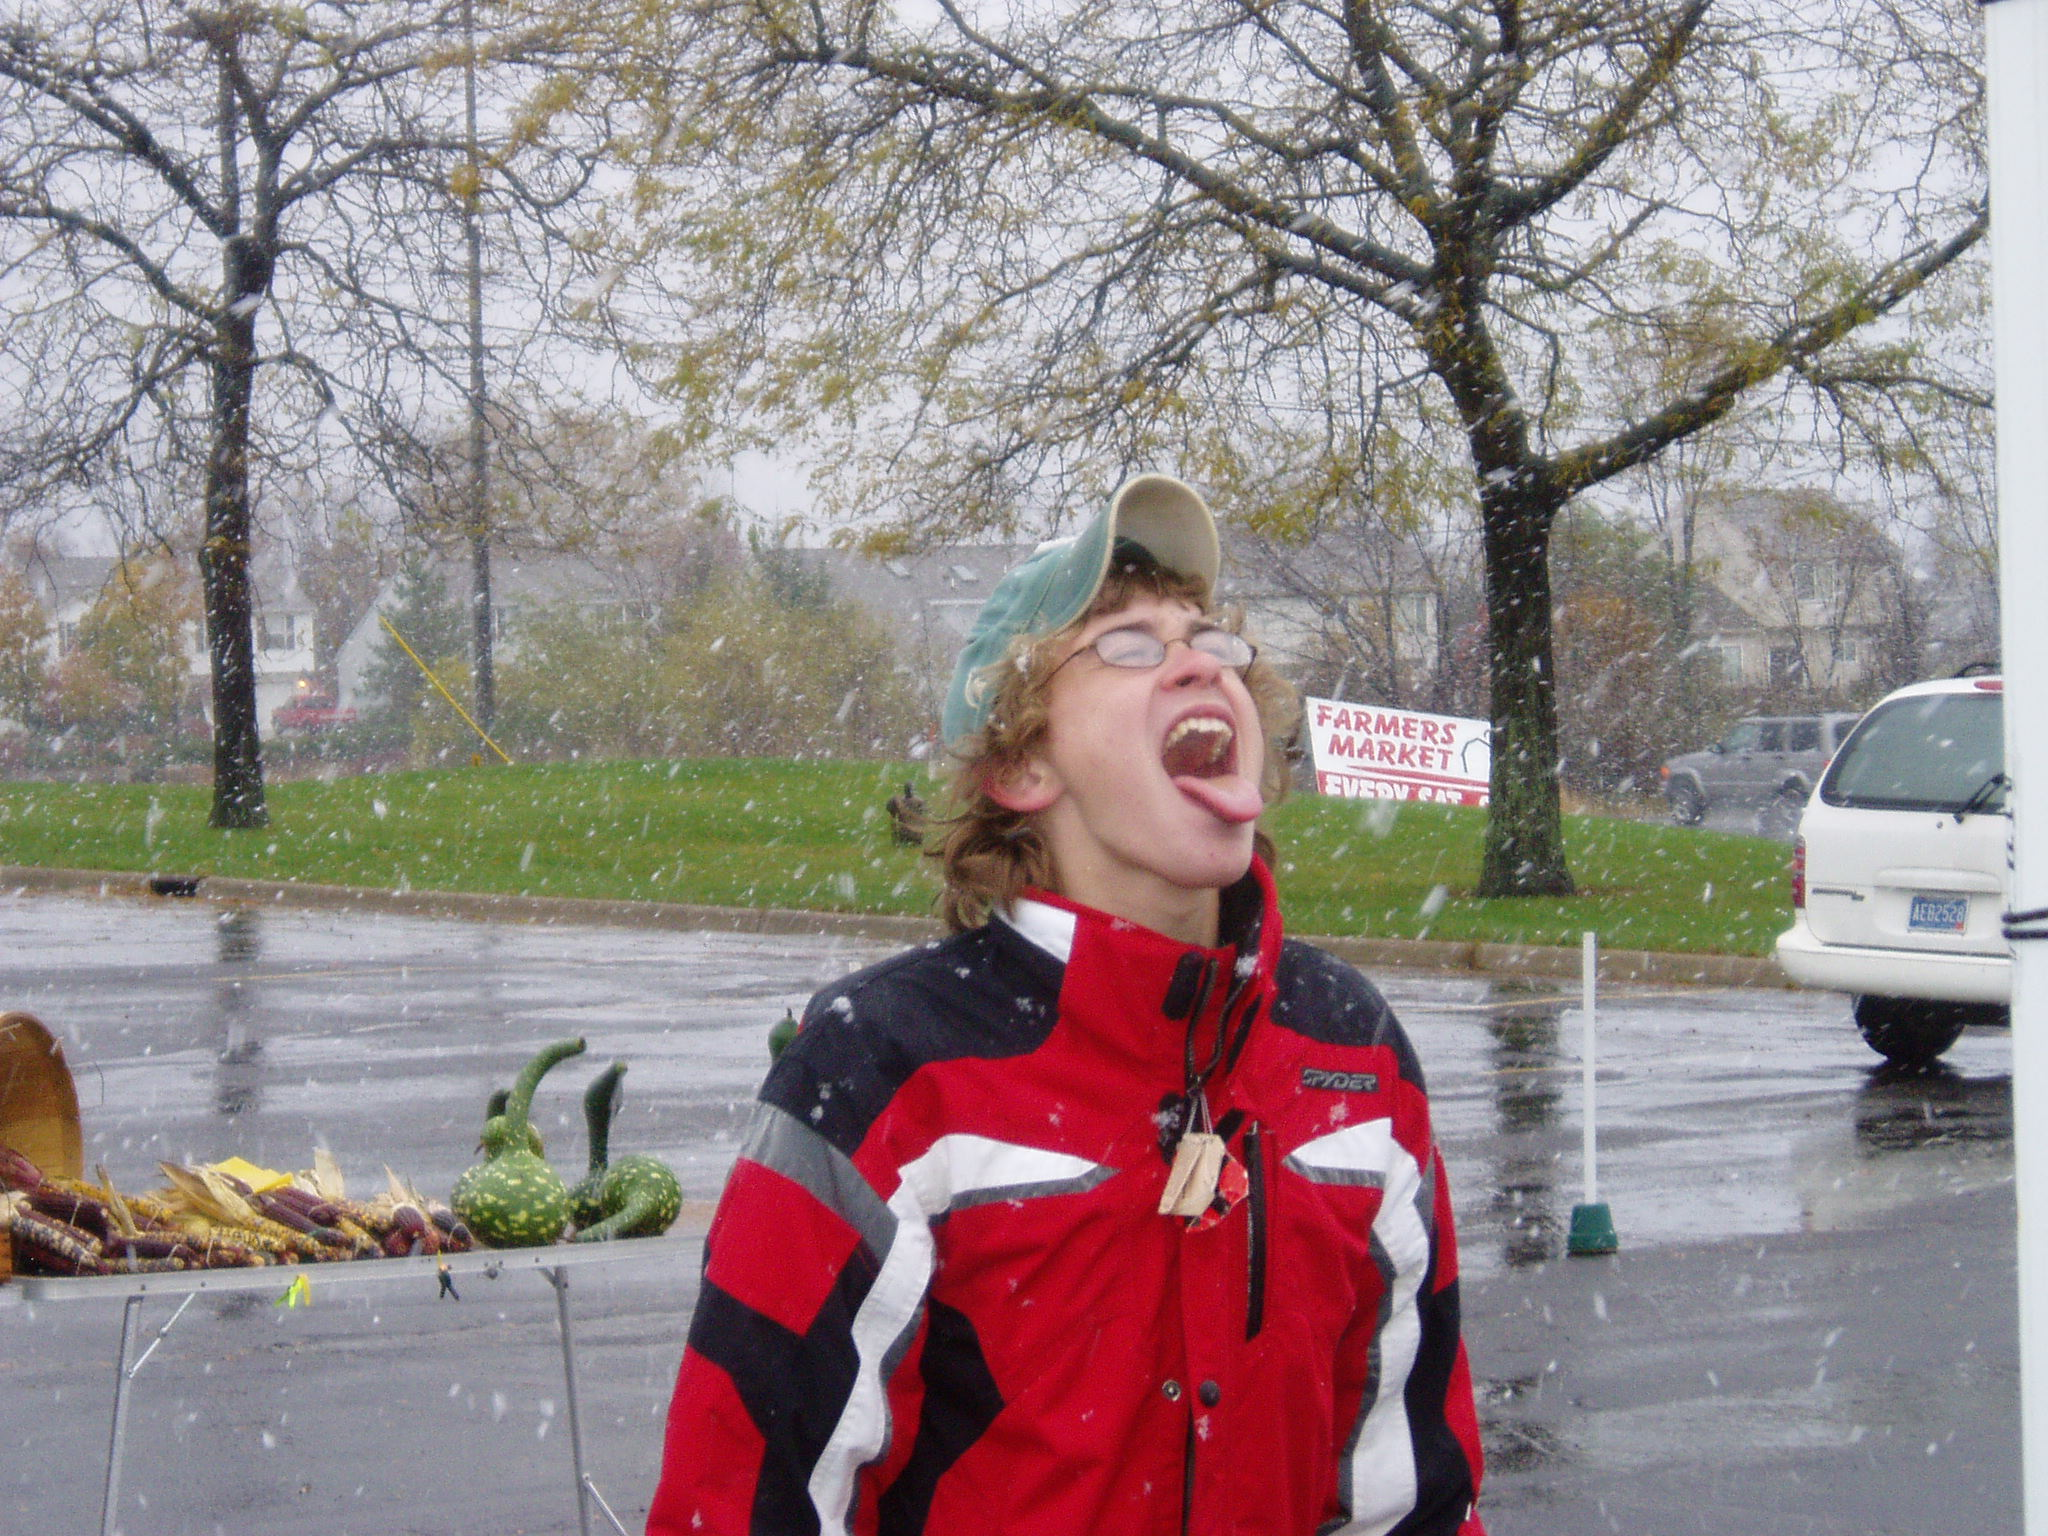 a 4-H member catches snowflakes during the market